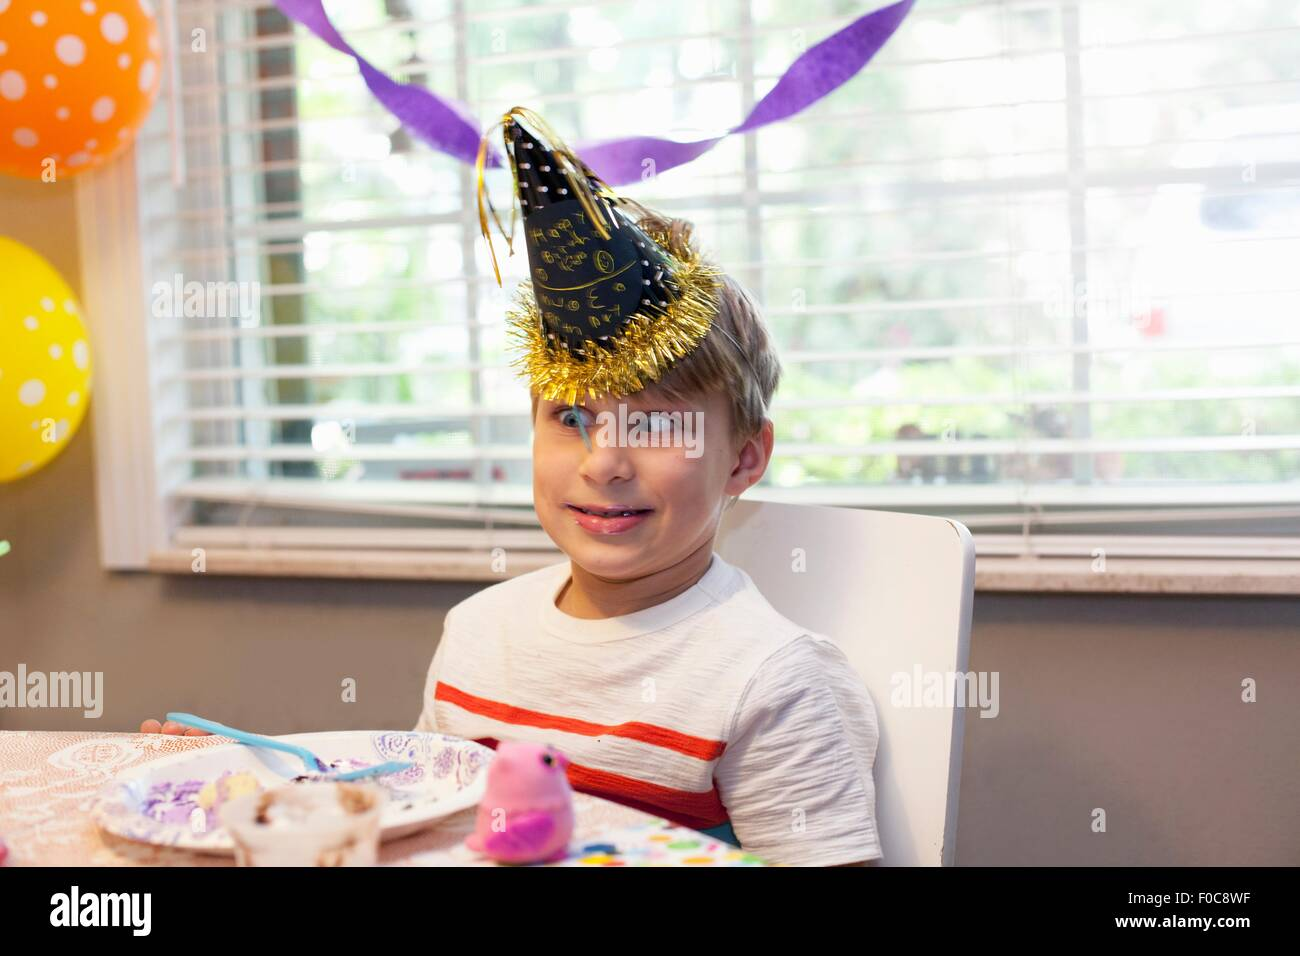 Boy in party hat sitting at table eating birthday cake pulling funny face - Stock Image